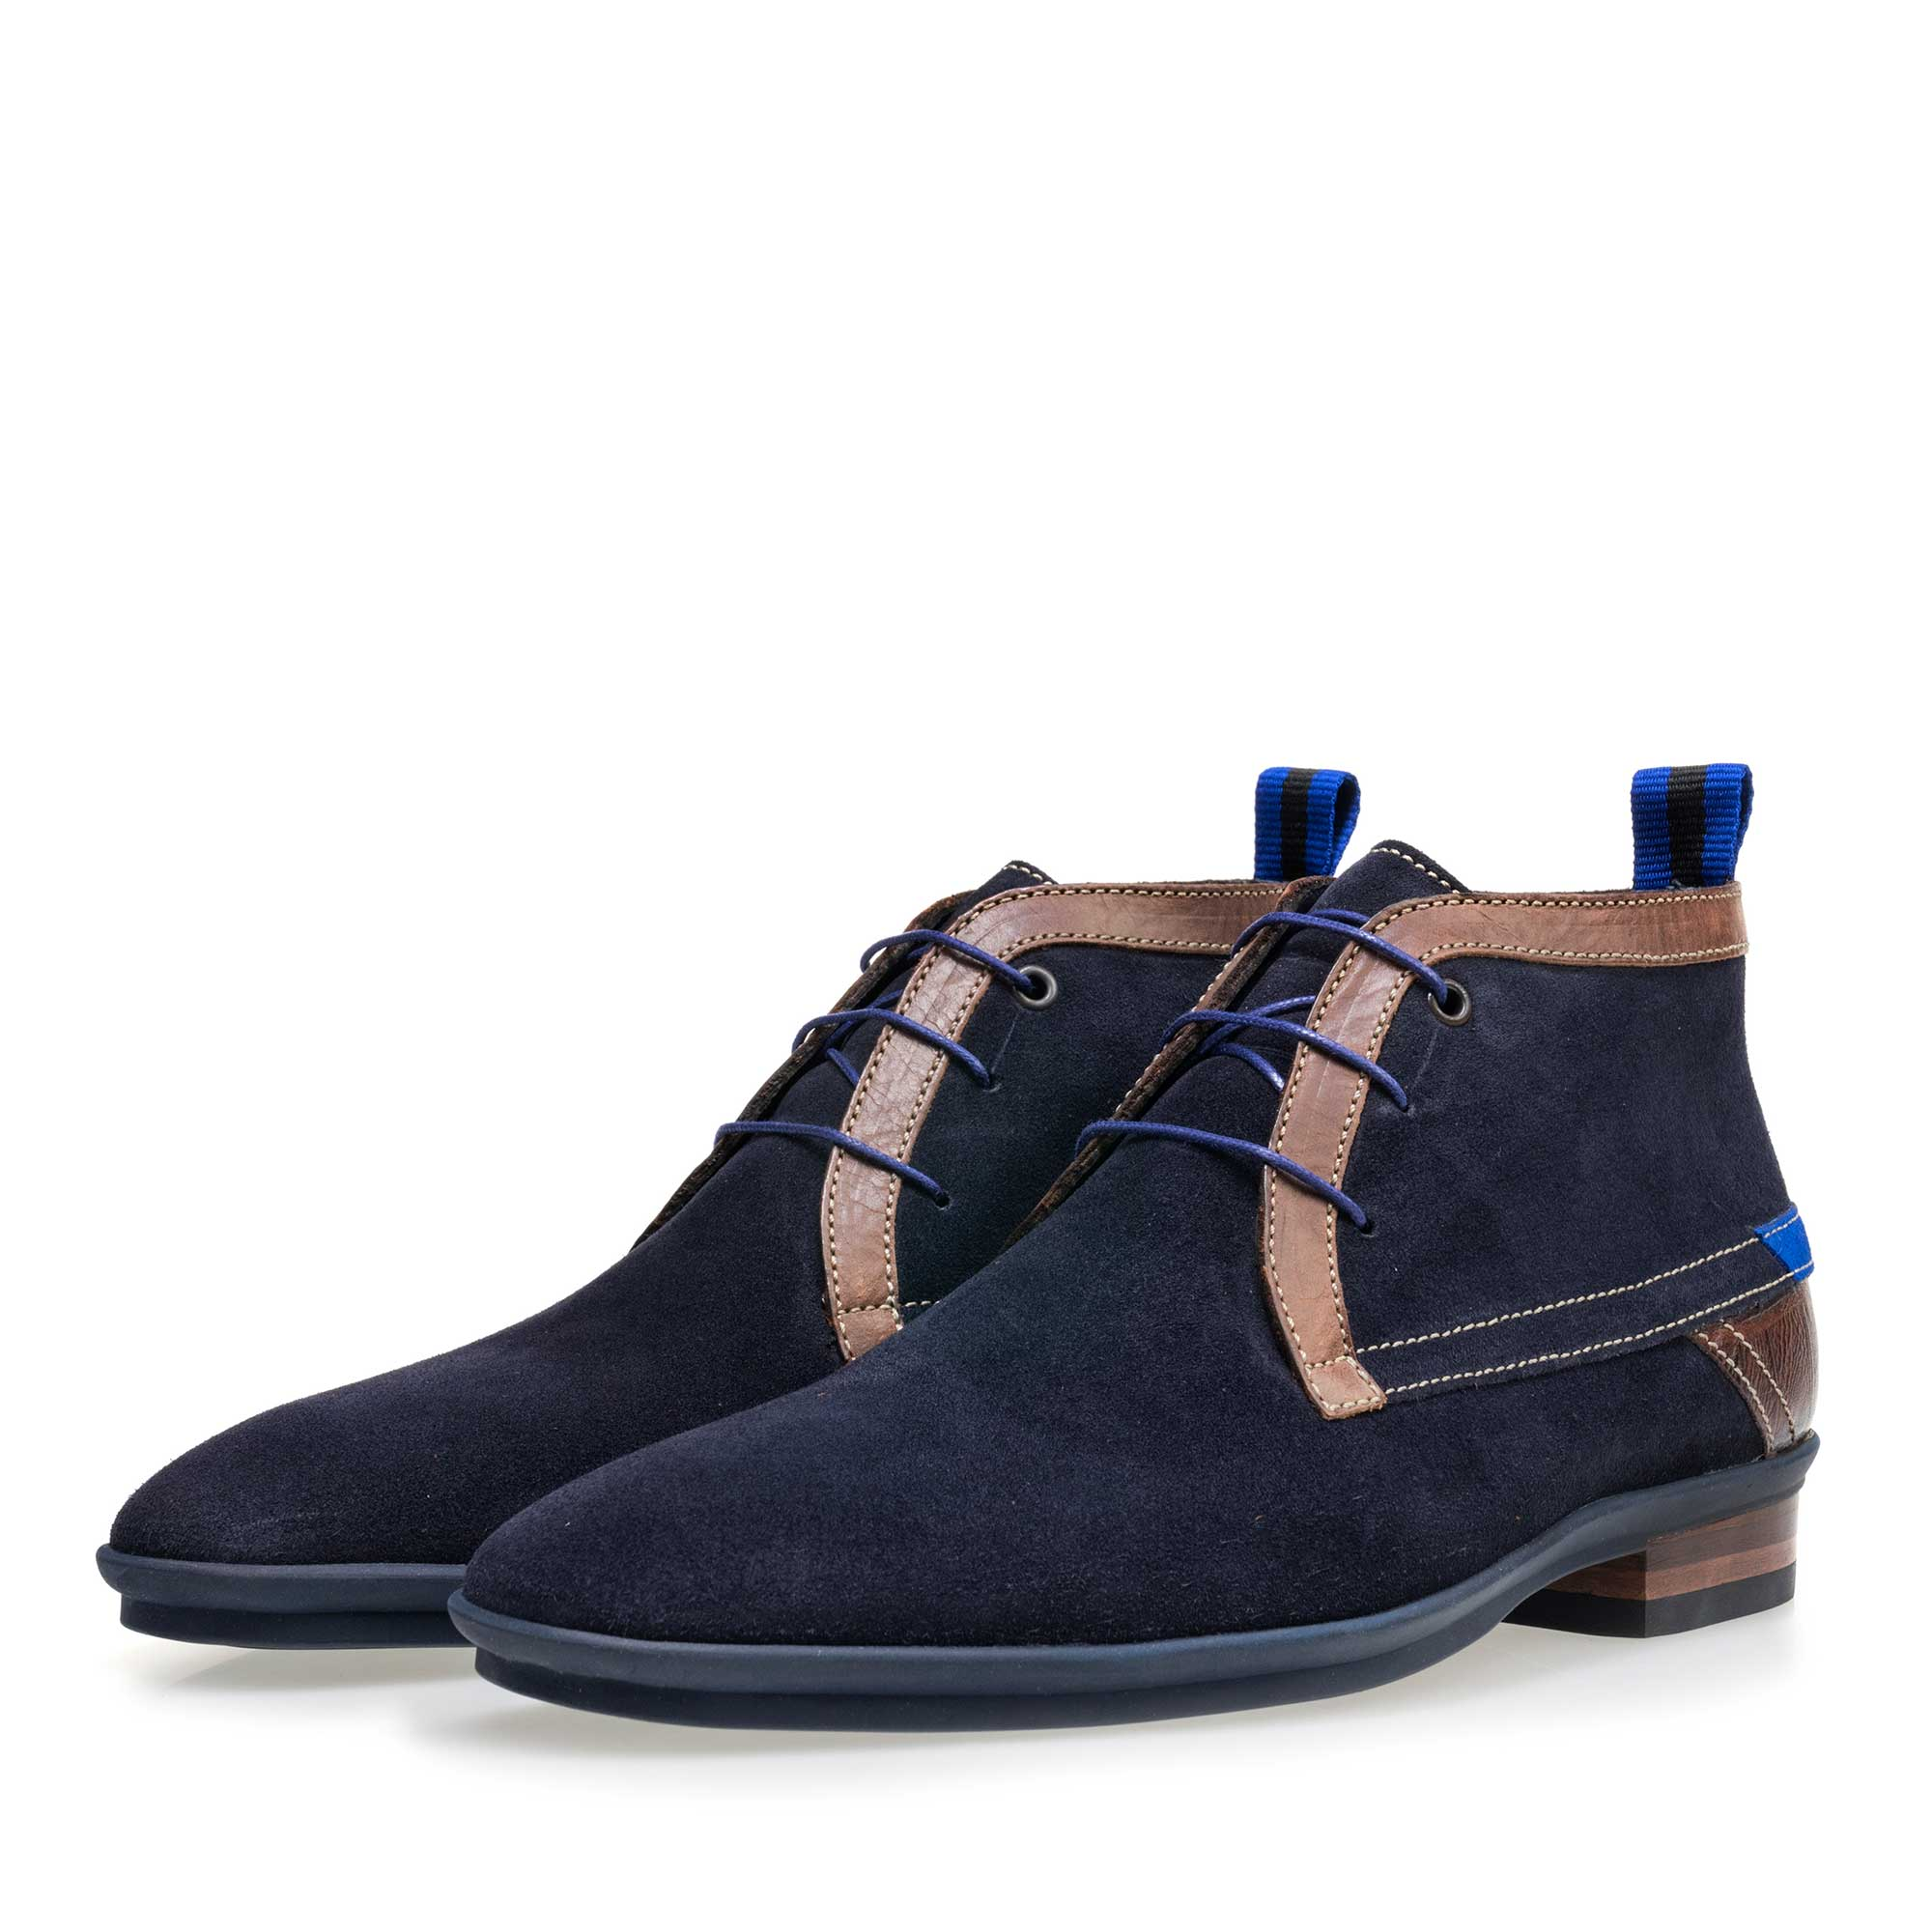 10334/23 - Dark blue mid-high suede leather lace boot